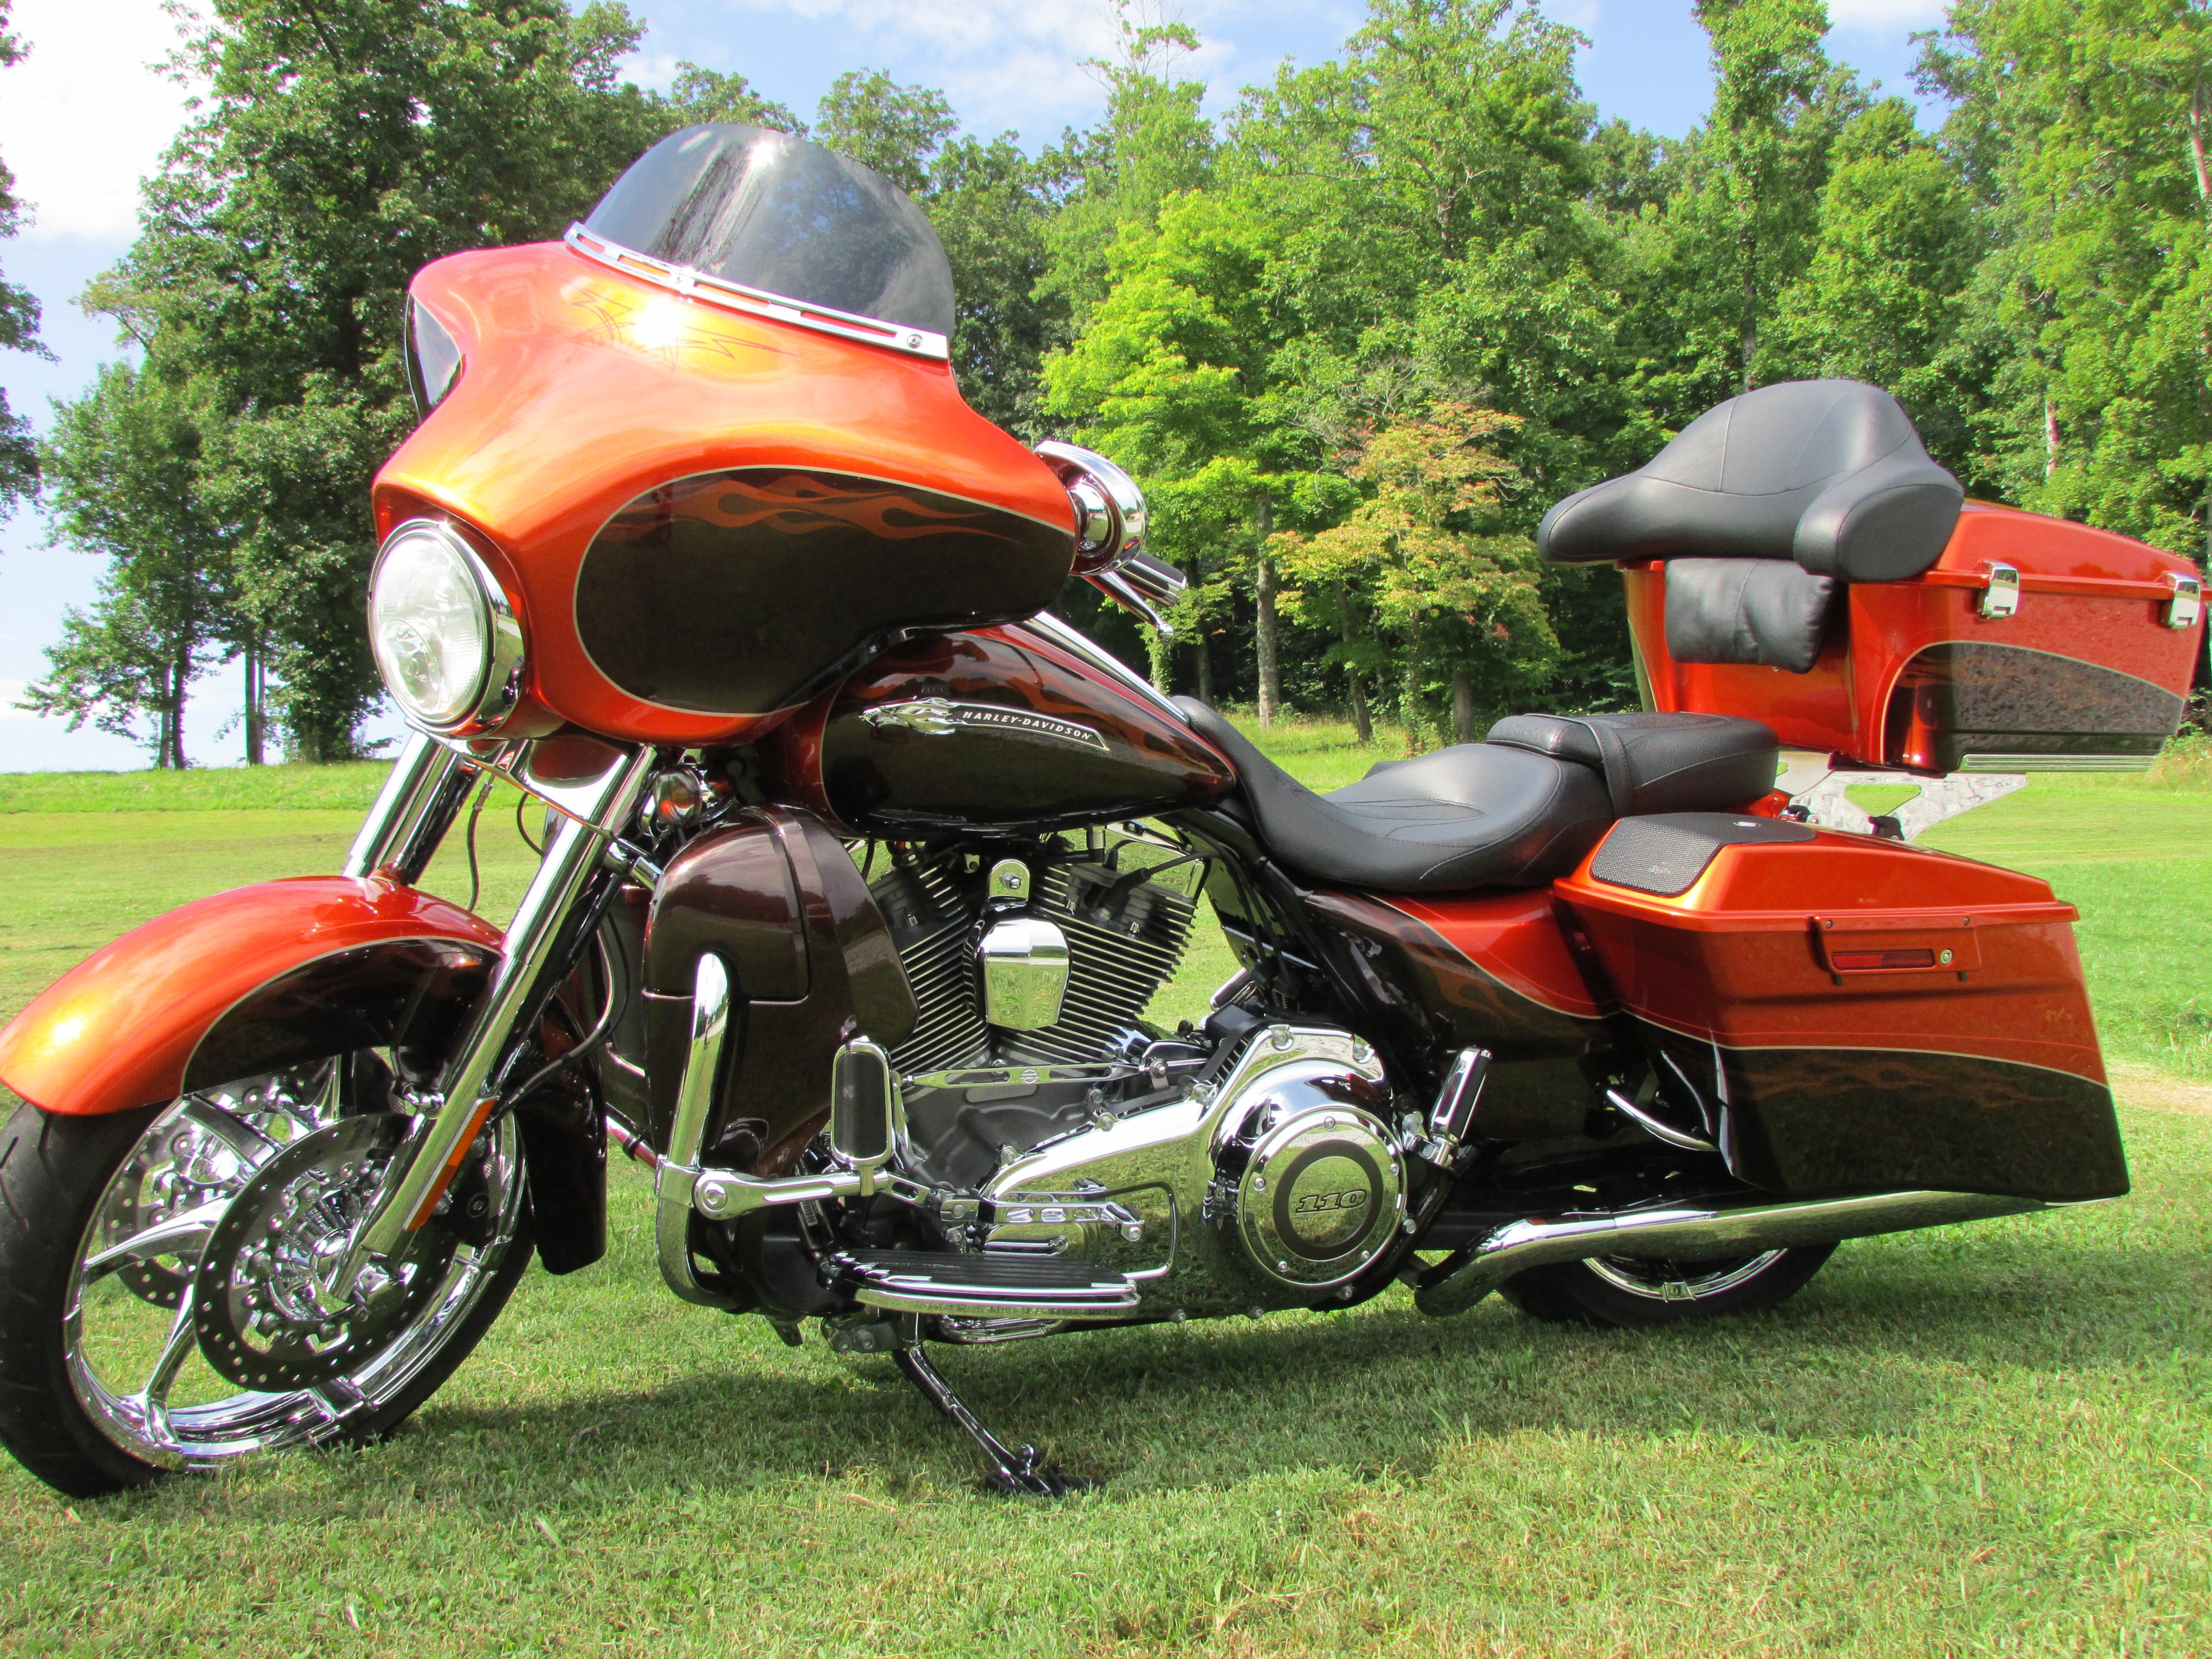 2012 harley davidson flhxse3 cvo street glide hot citrus antique gunstock thorn hill. Black Bedroom Furniture Sets. Home Design Ideas